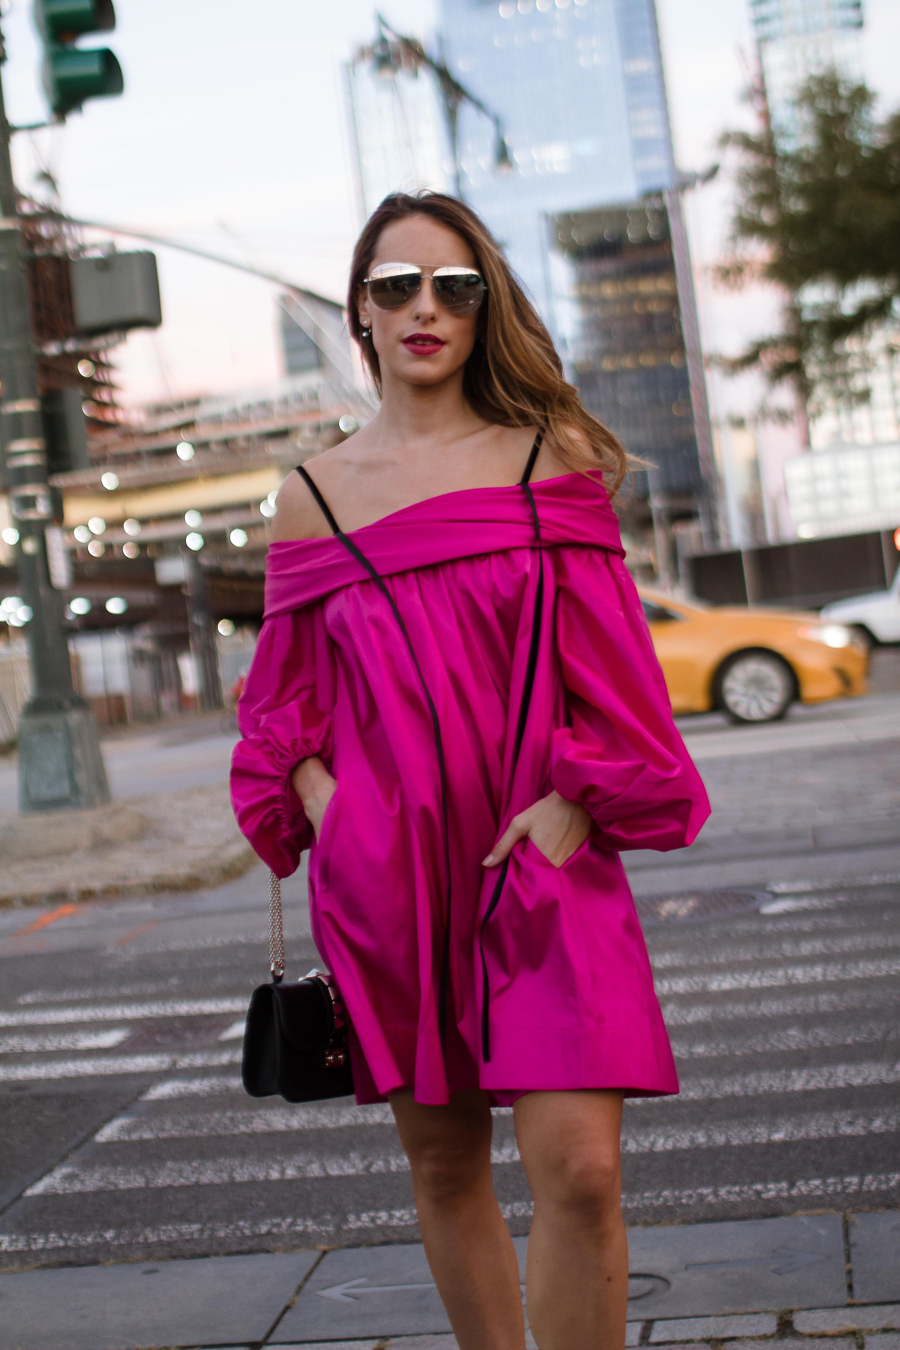 sabrina-chakici-clutch-and-carry-on-clutch-carry-on-uk-travel-blogger-nyfw-isa-arfen-pink-ress-gucci-silver-shoes-net-a-porter-helicopter-10